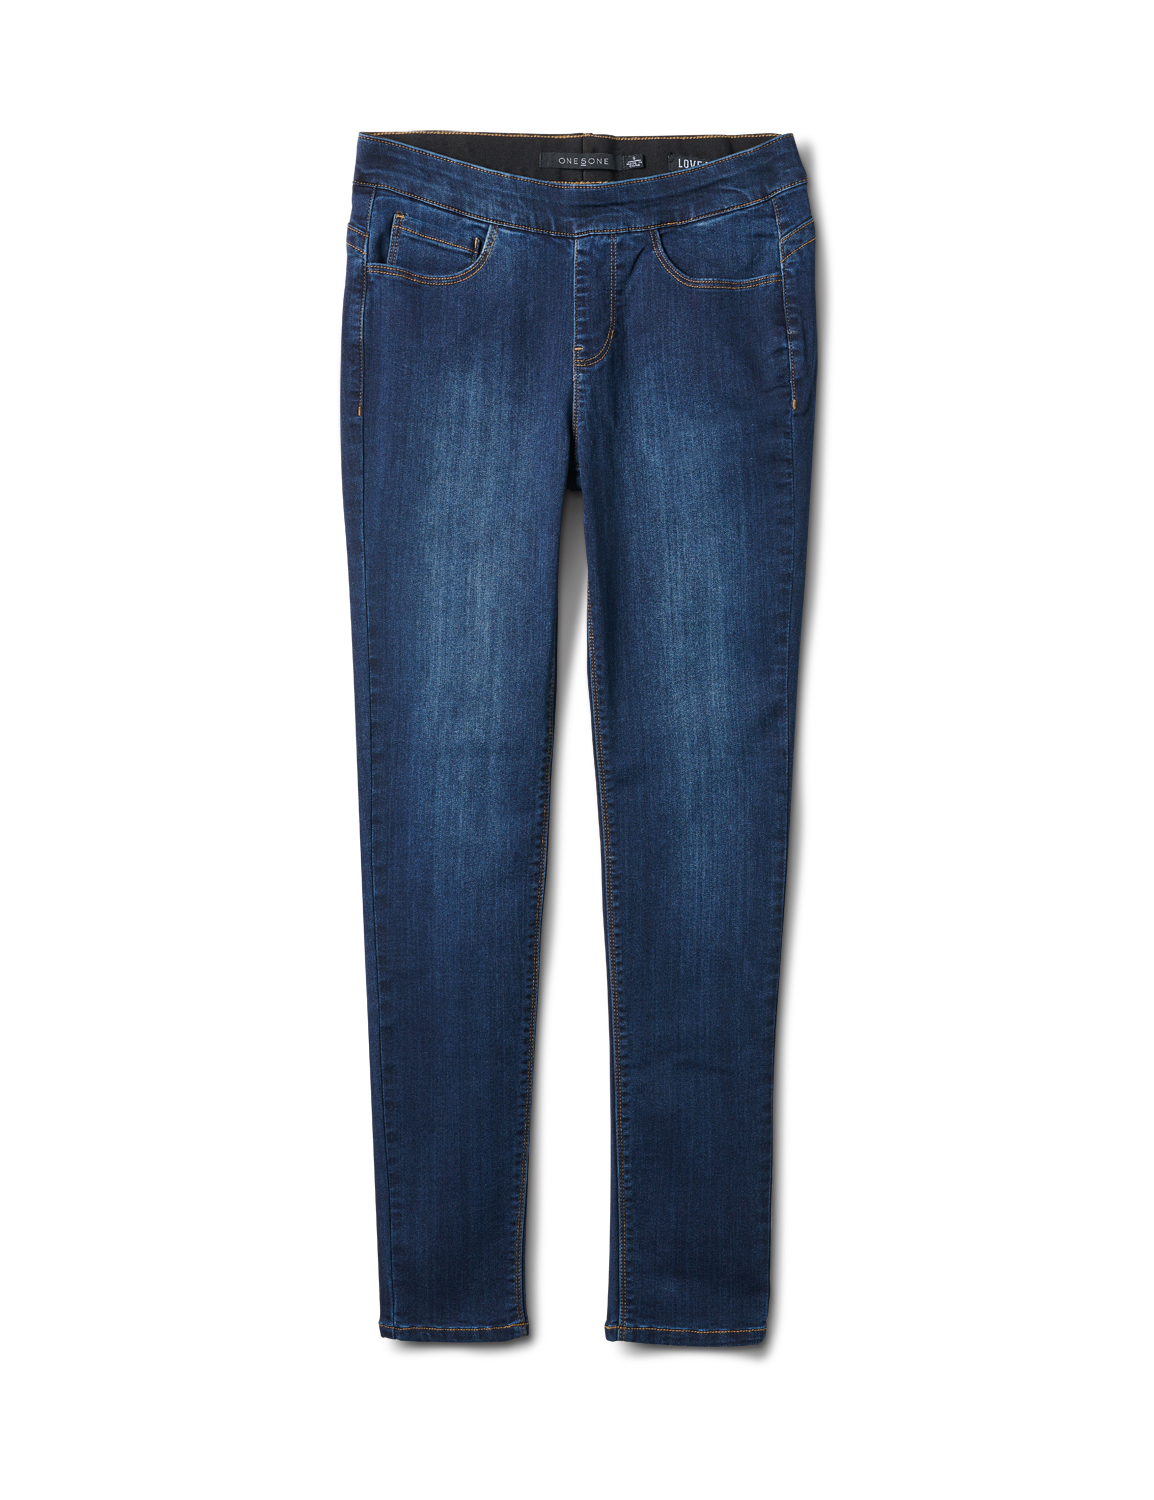 Mid Rise Skinny Pull On Jean Pants - Front And Back Pockets -Dark Stone Wash - Front